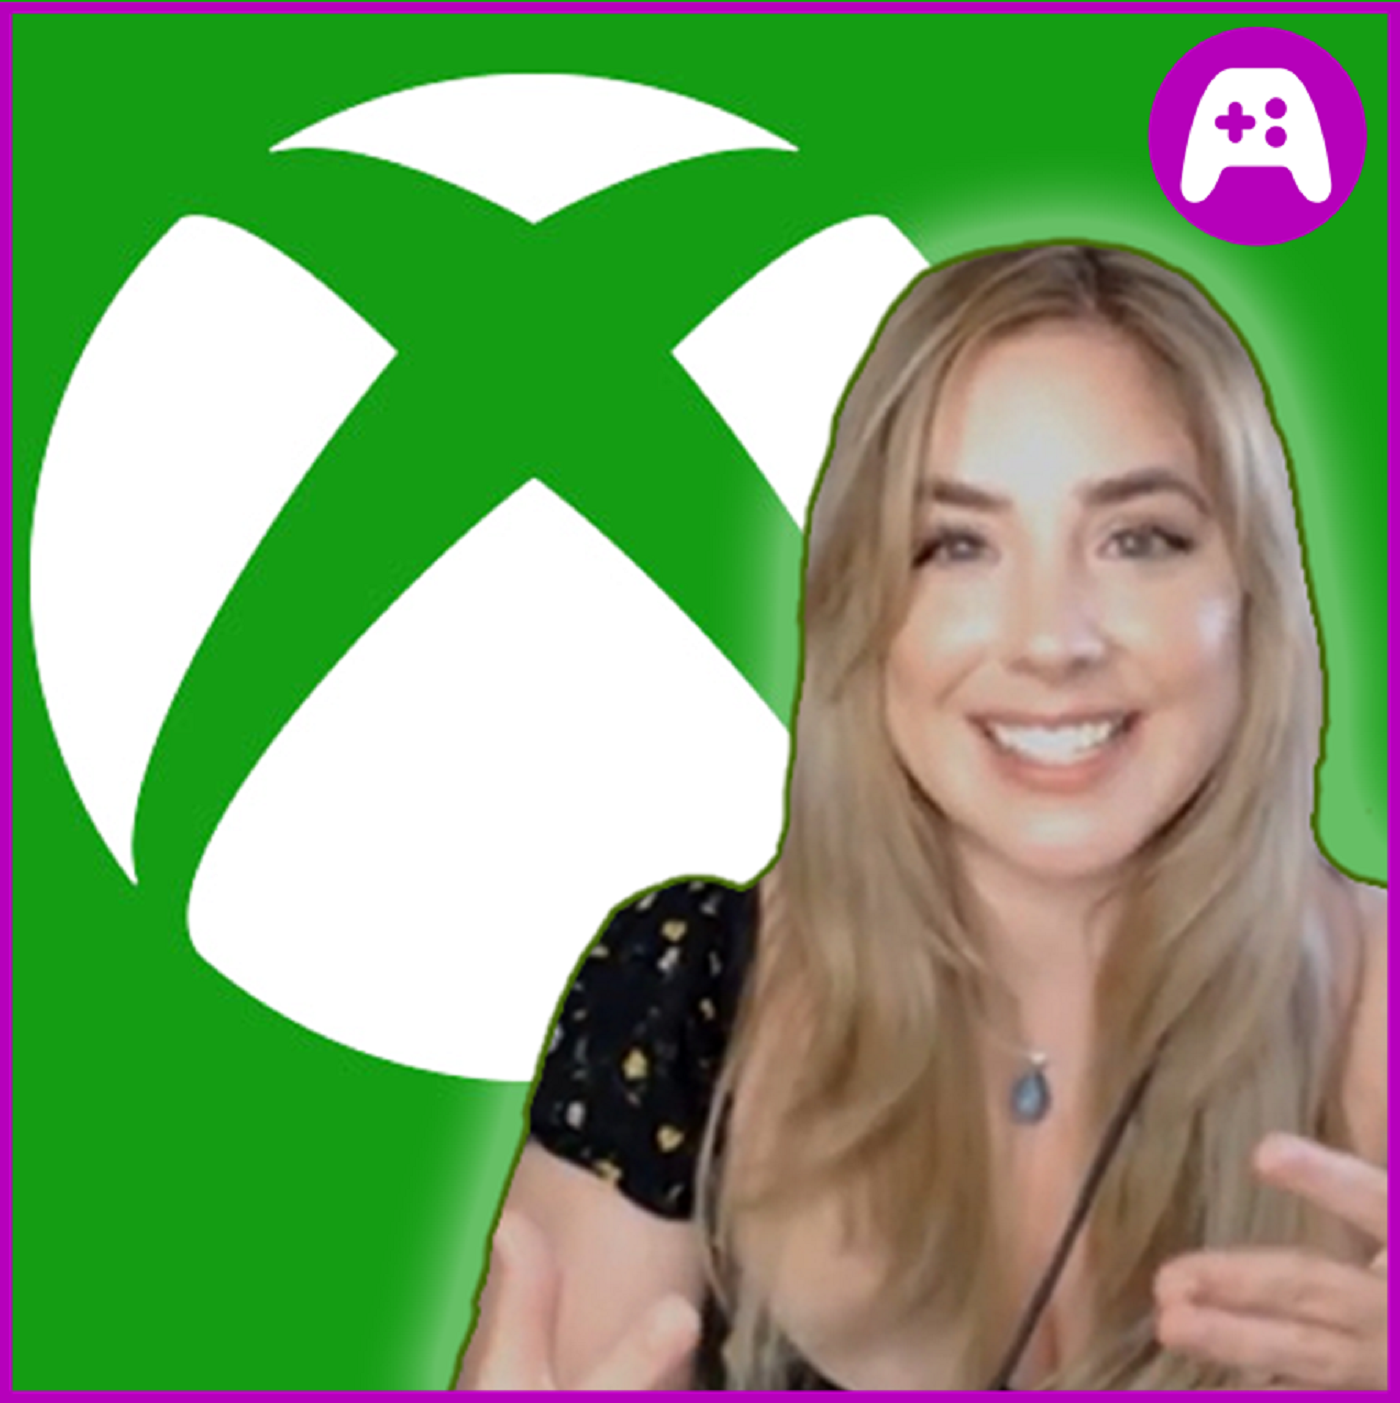 Xbox New Streaming Service - What's Good Games (Ep. 175)